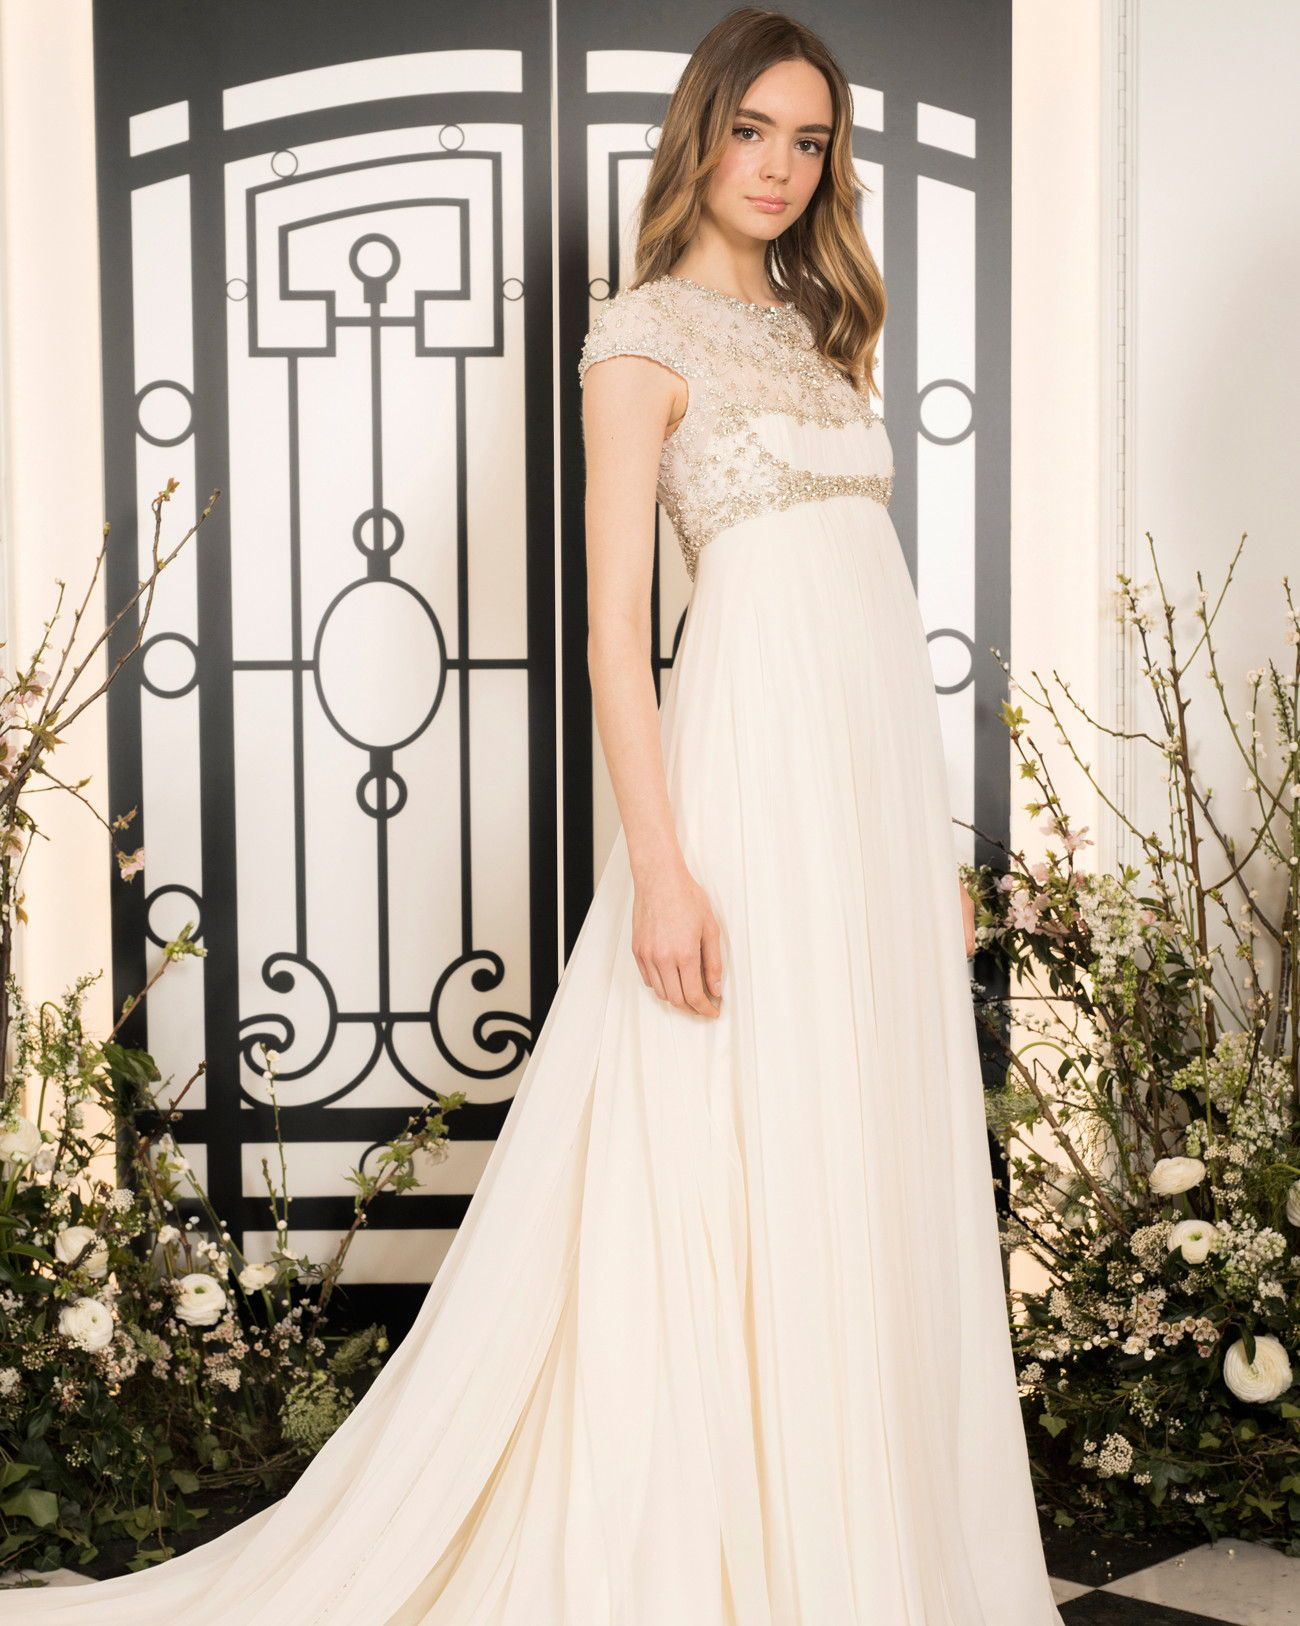 Jenny Packham Spring 2020 Wedding Dress Collection Jenny Packham Bridal Jenny Packham Wedding Dresses Empire Wedding Dress